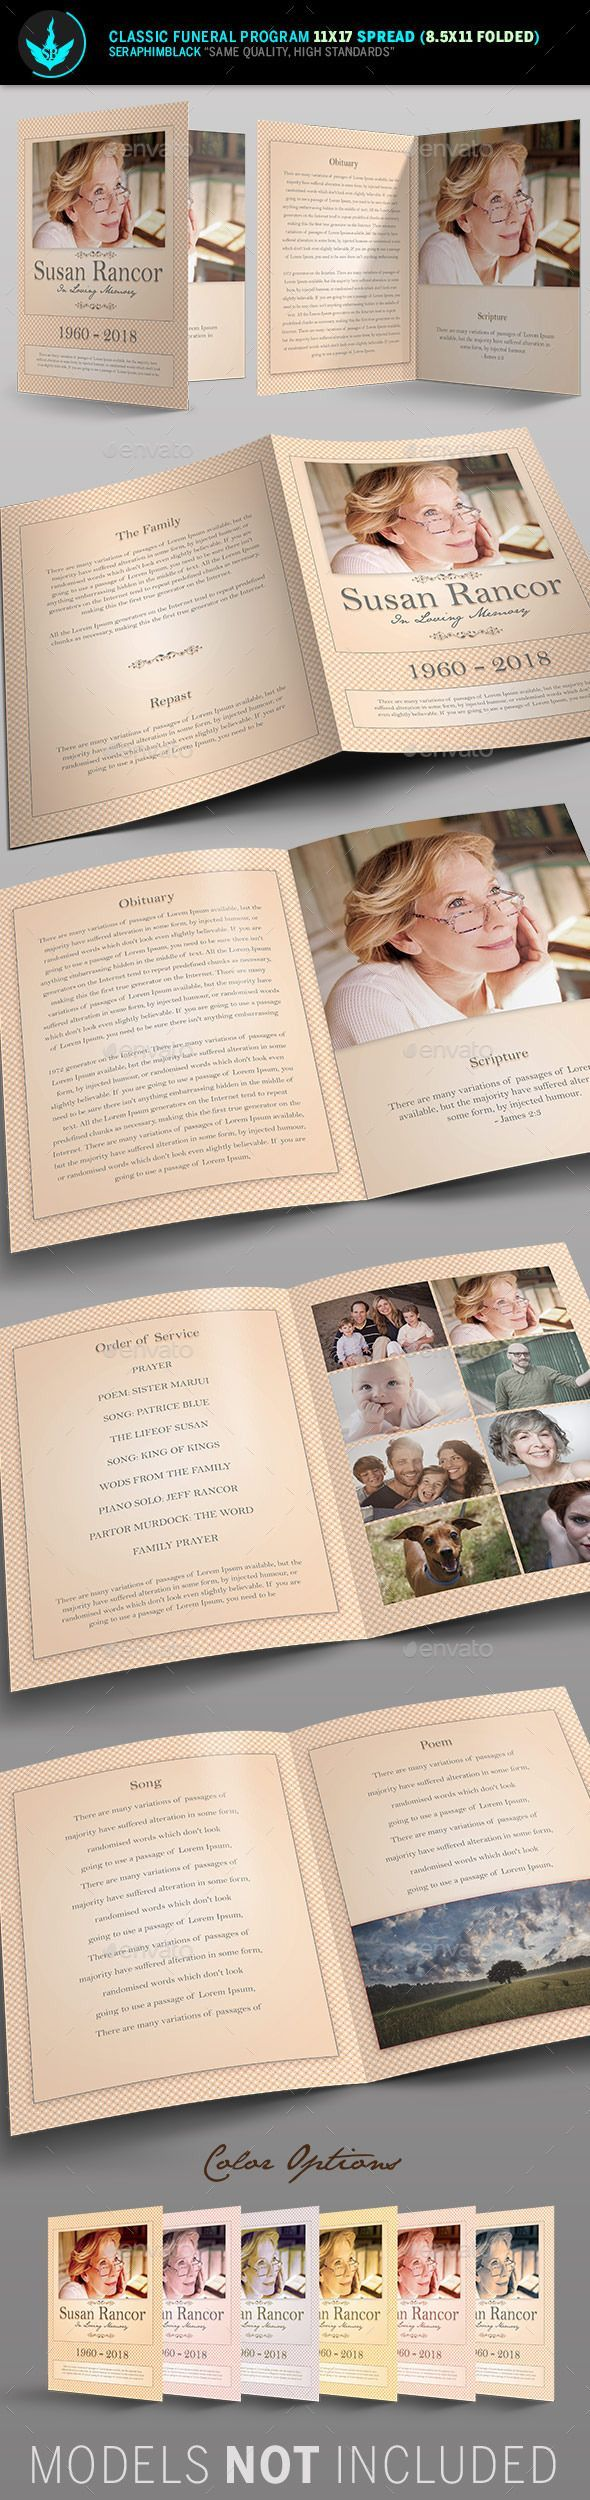 Classic Funeral Program Template  Need a unique funeral program booklet design with a vintage look for the deceased? Look no further, this file is easy to use and will give you a wonderful, clean presentation. Customize this flexible file in multiple ways to honor your loved one.